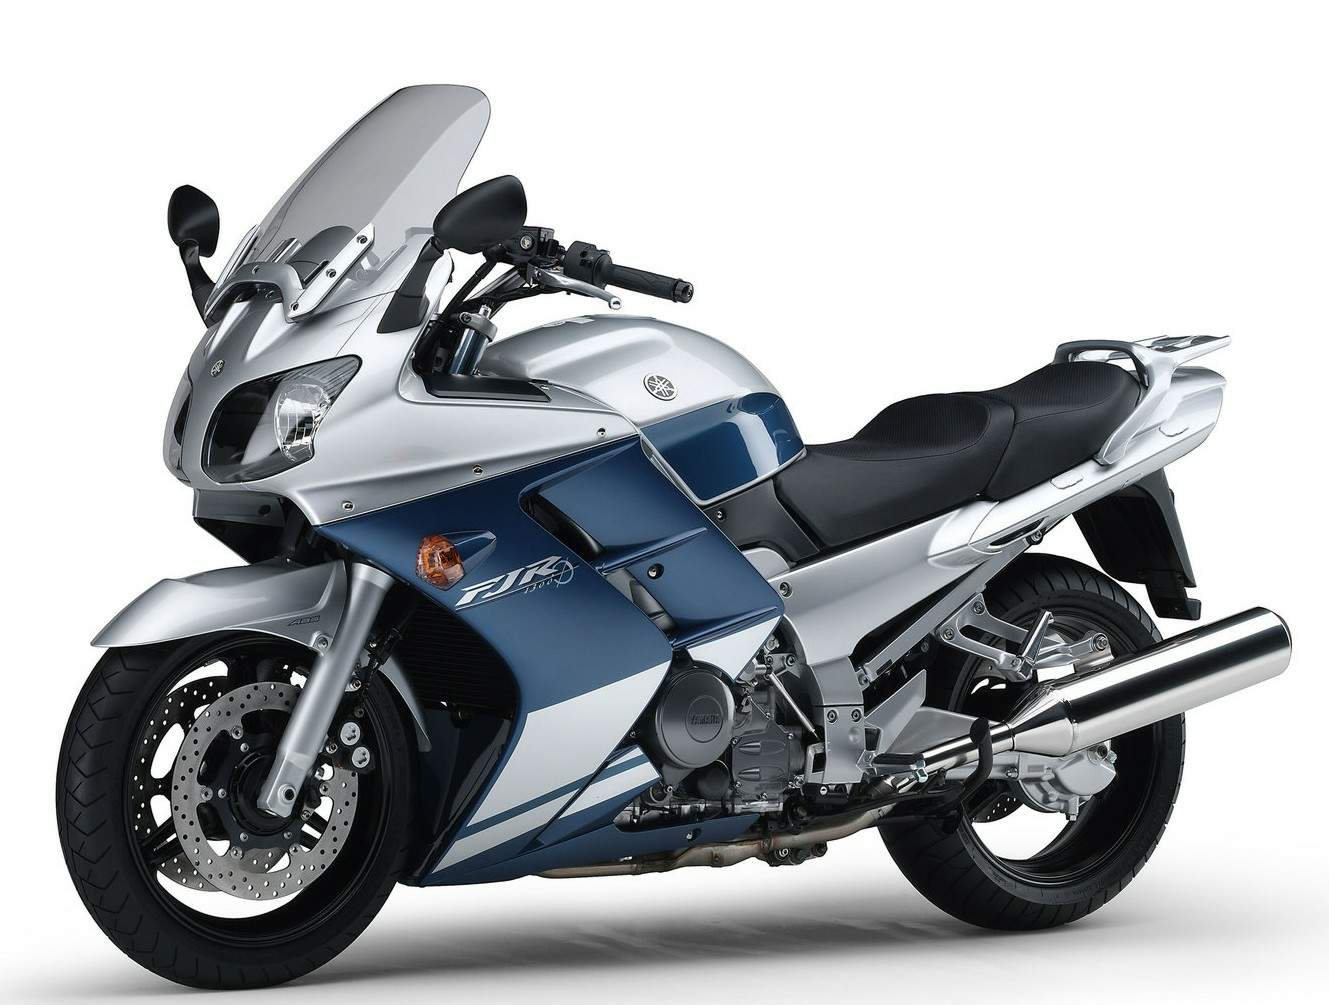 Yamaha FJR 1300 / ABS For Sale Specifications, Price and Images